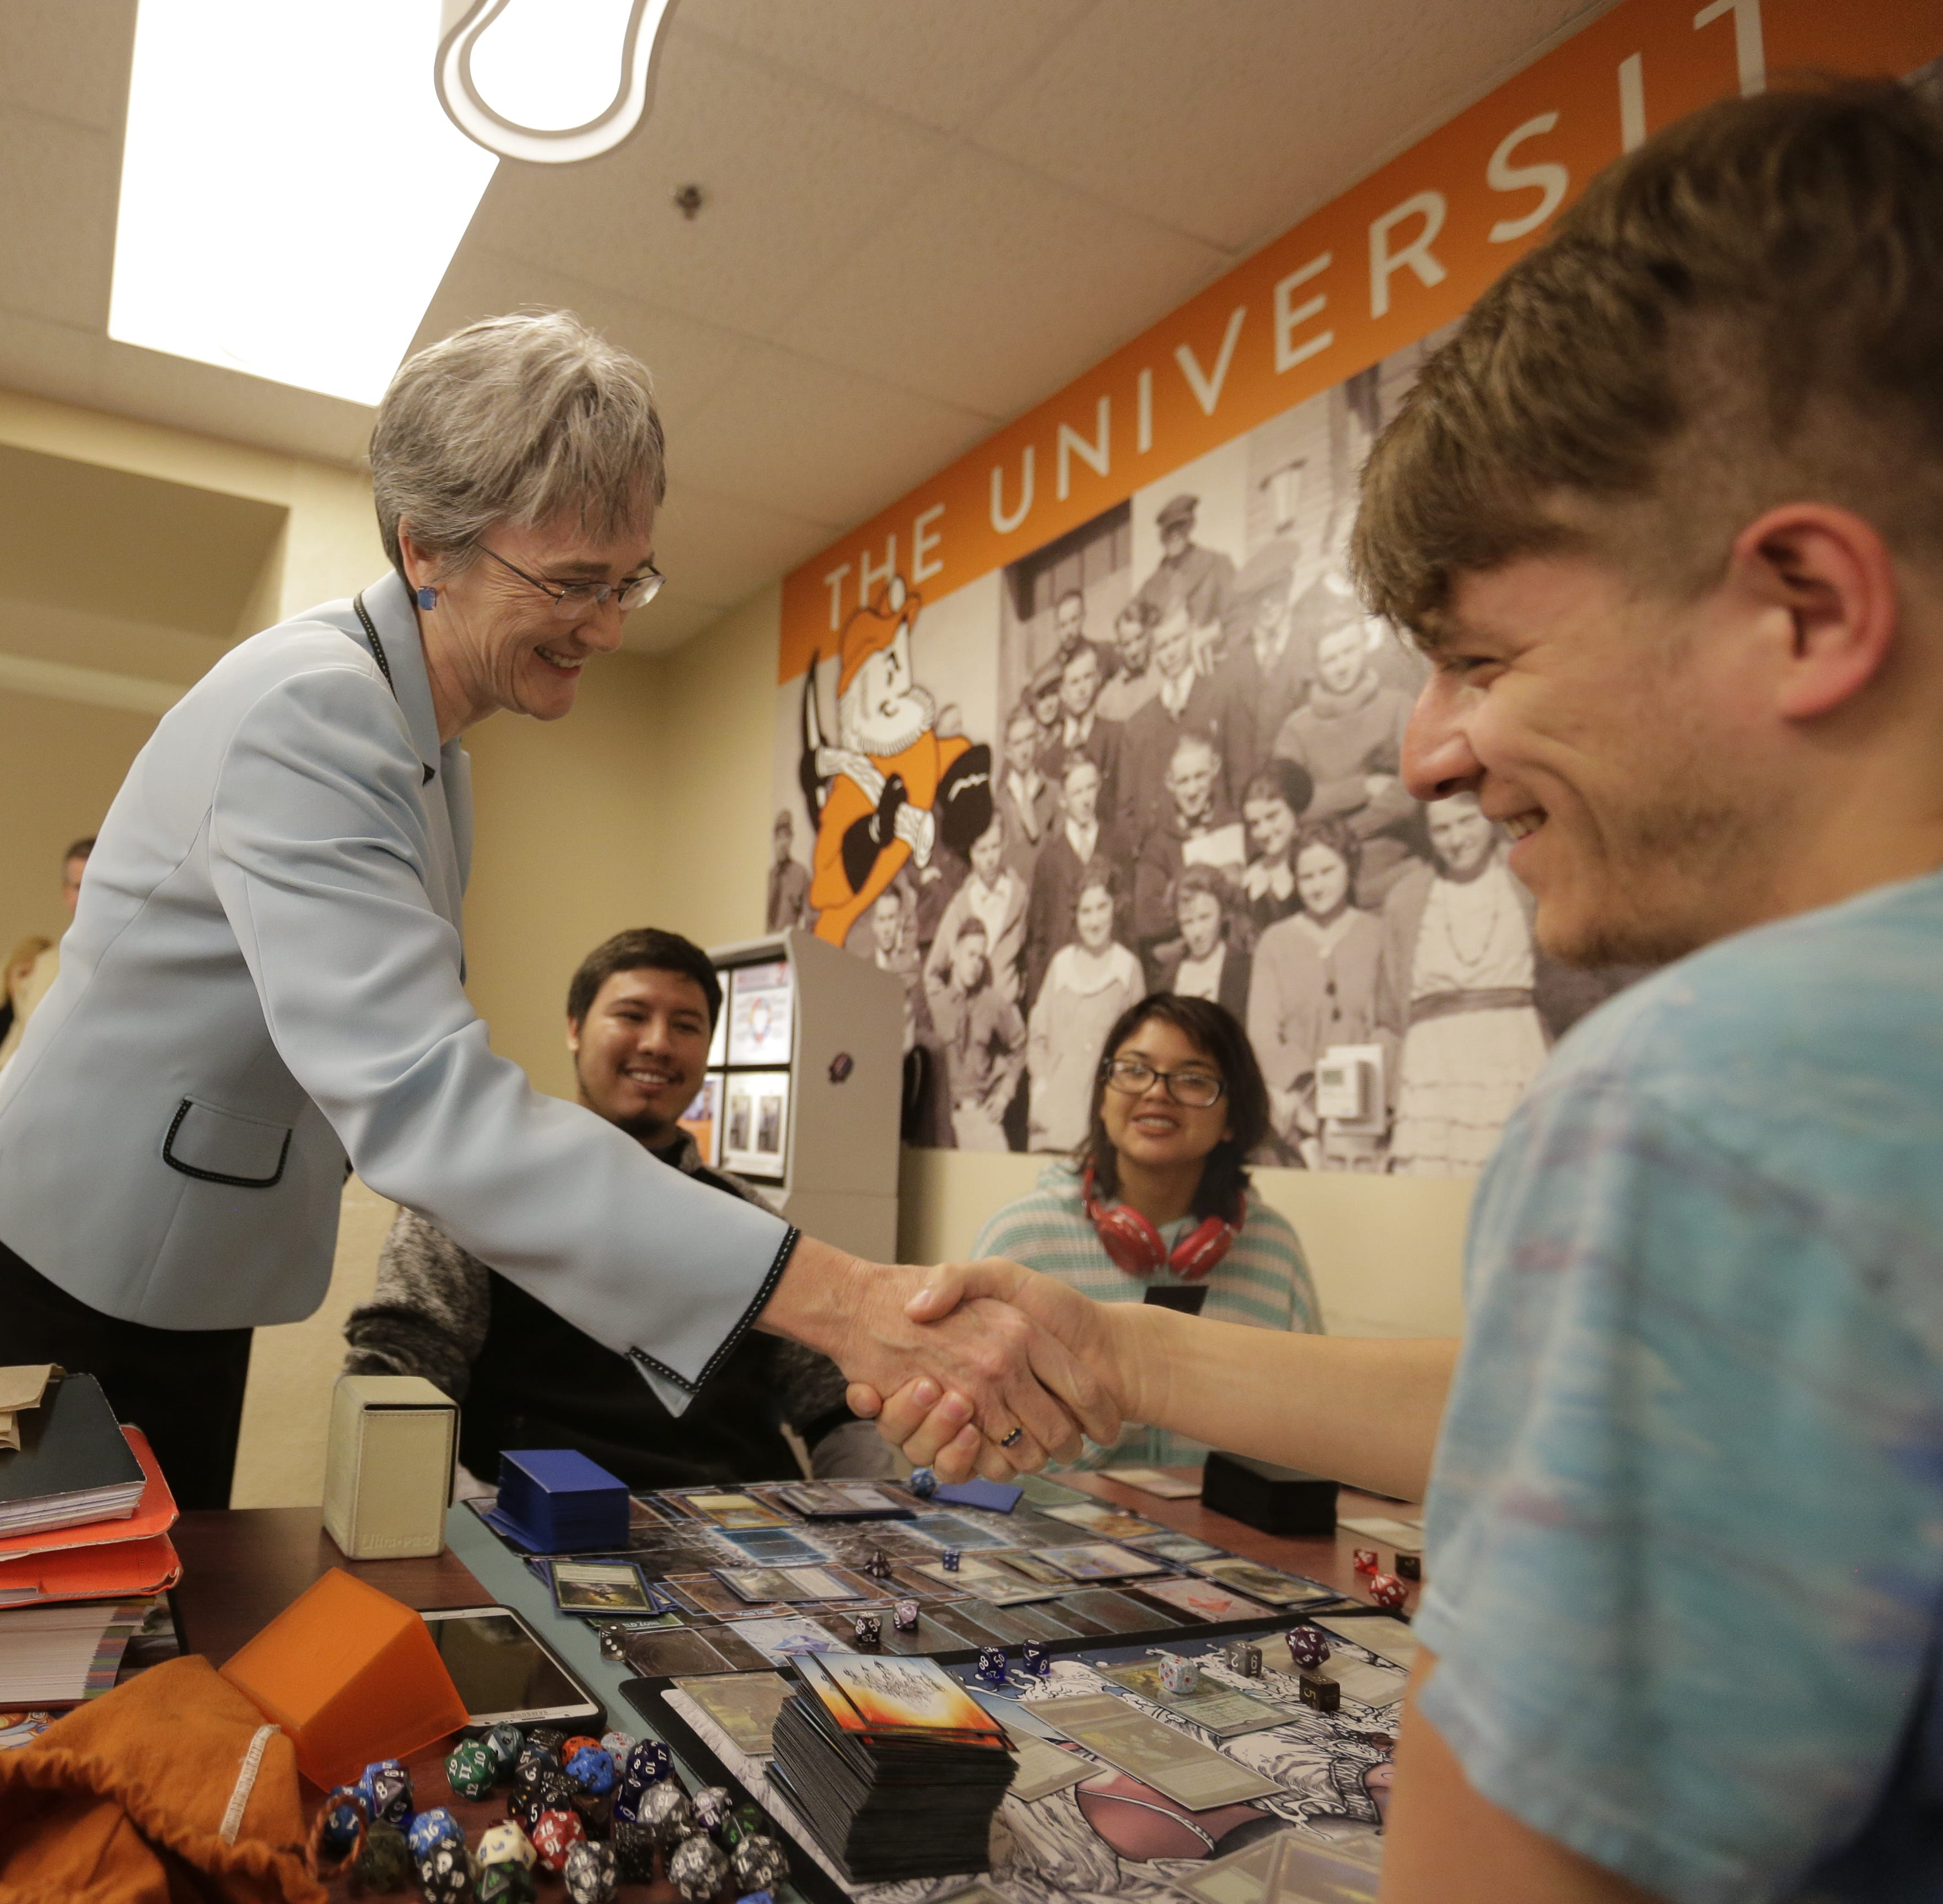 Heather Wilson deserves enthusiastic welcome: El Paso first lady Adair Margo